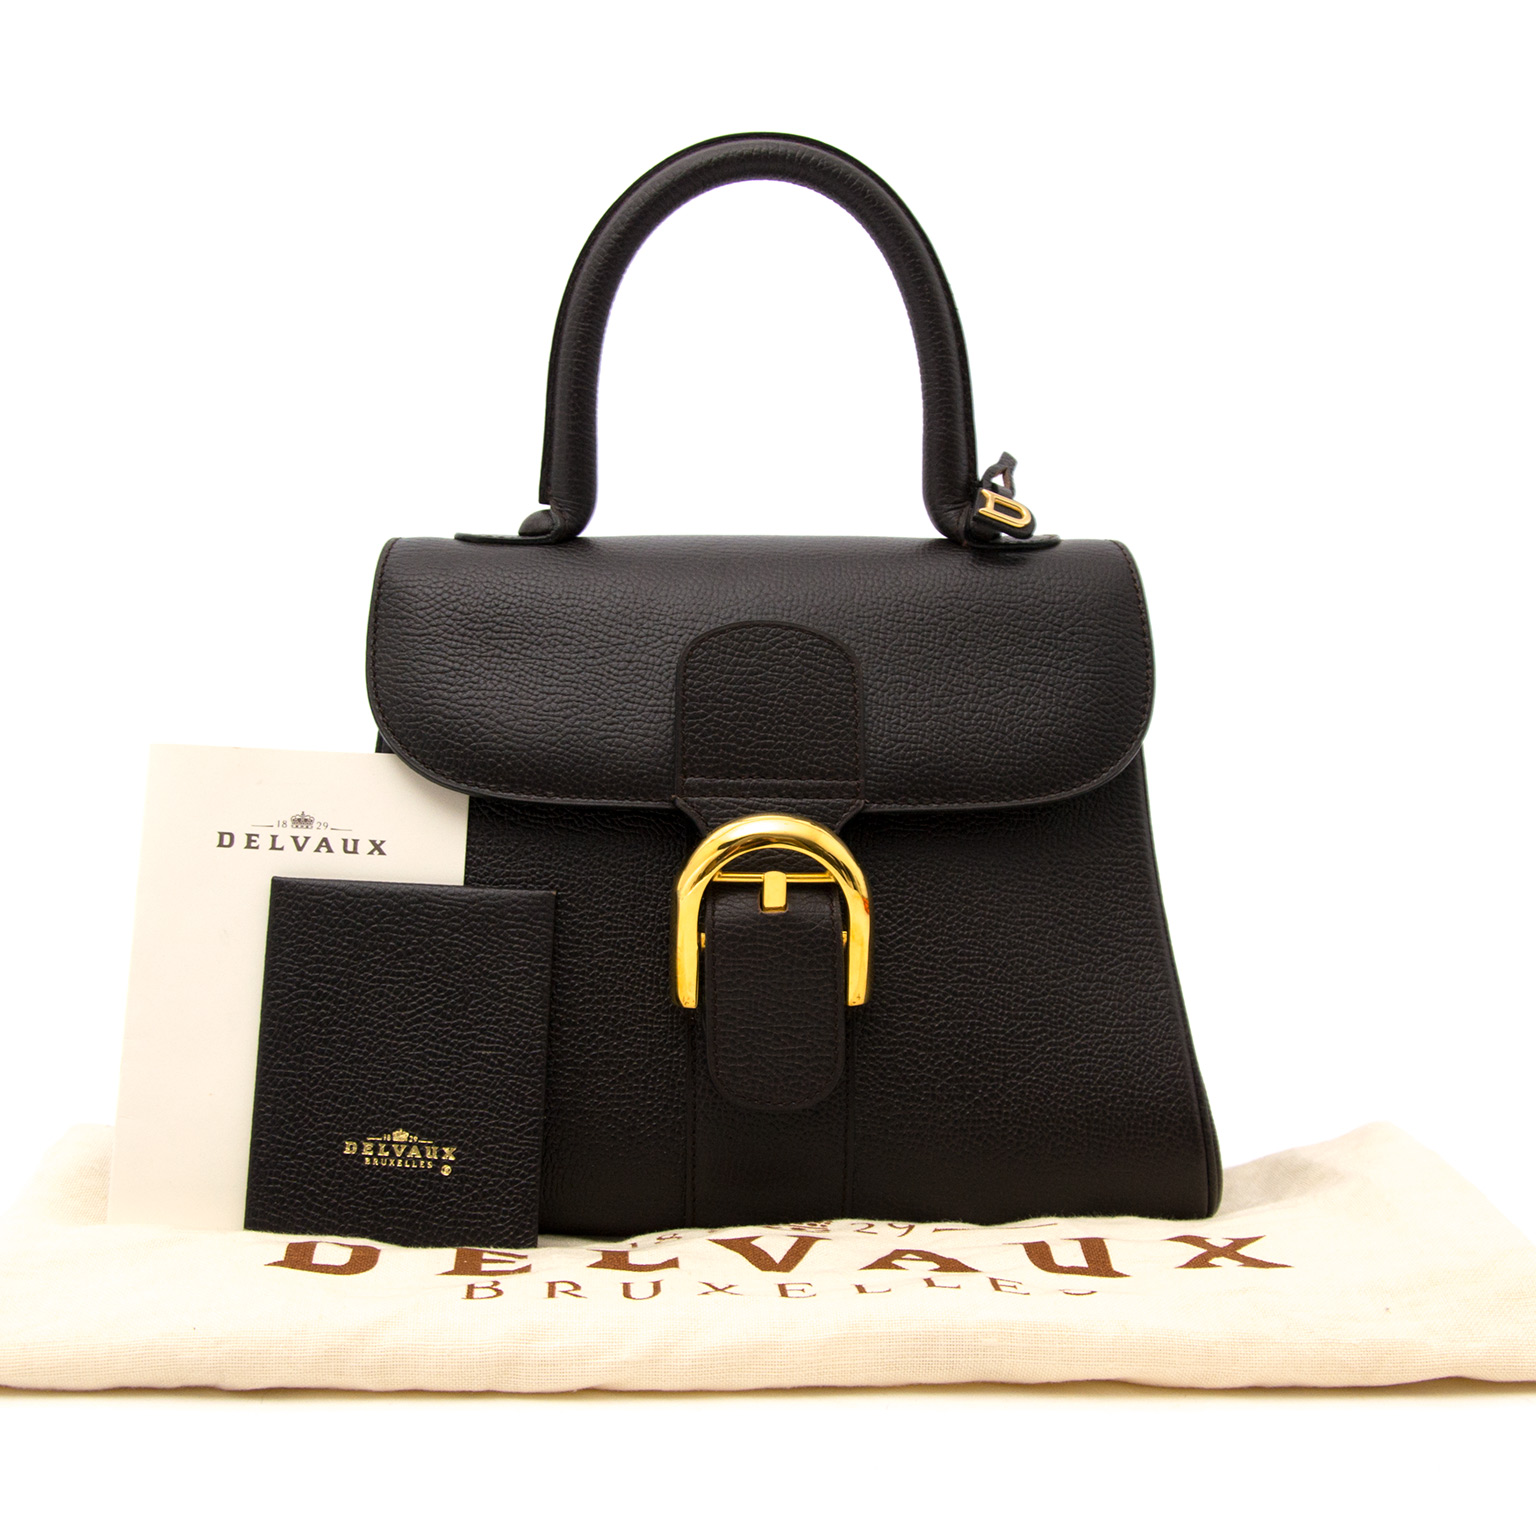 shop safe online at the best price secondhand Delvaux Dark Brown Brillant PM